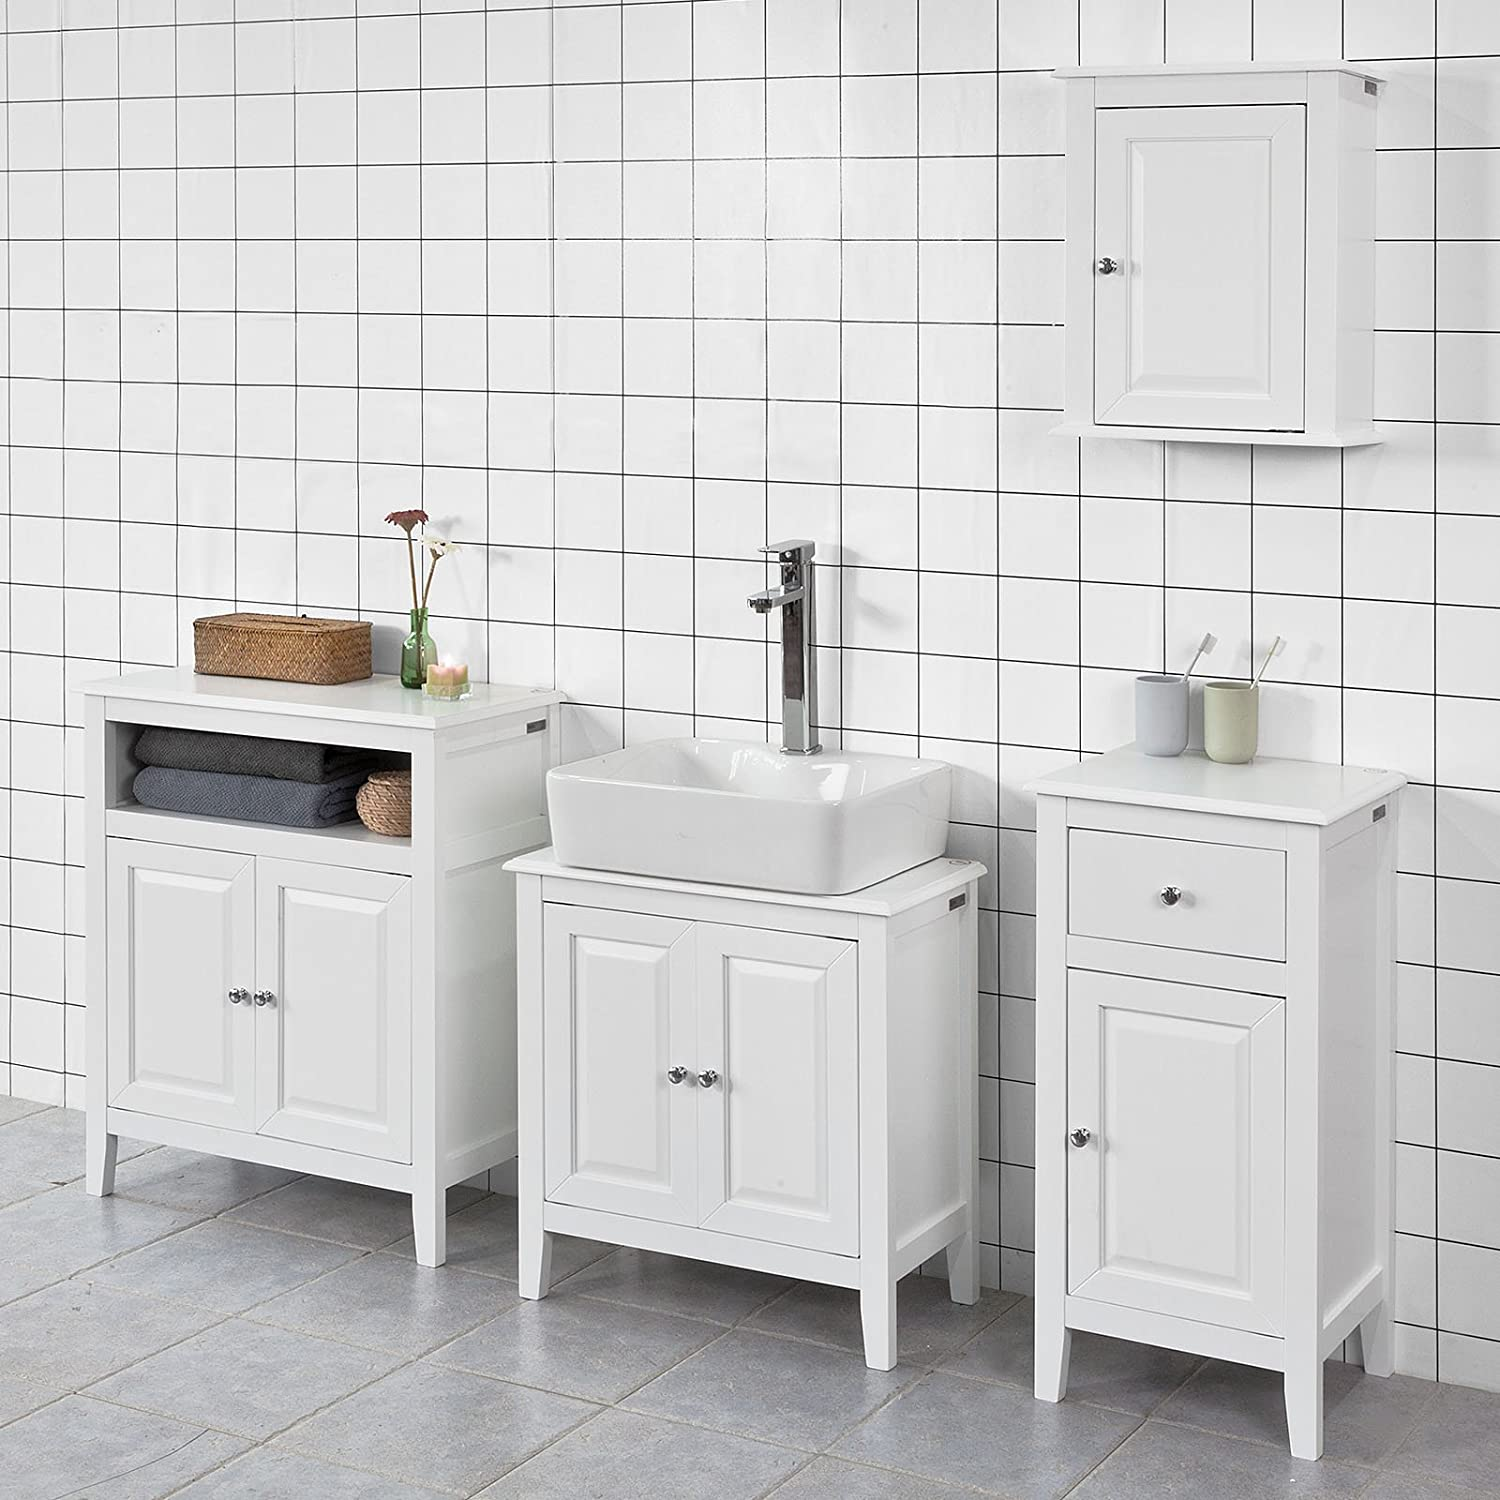 Haotian White Floor Standing Tall Bathroom Storage Cabinet with ...